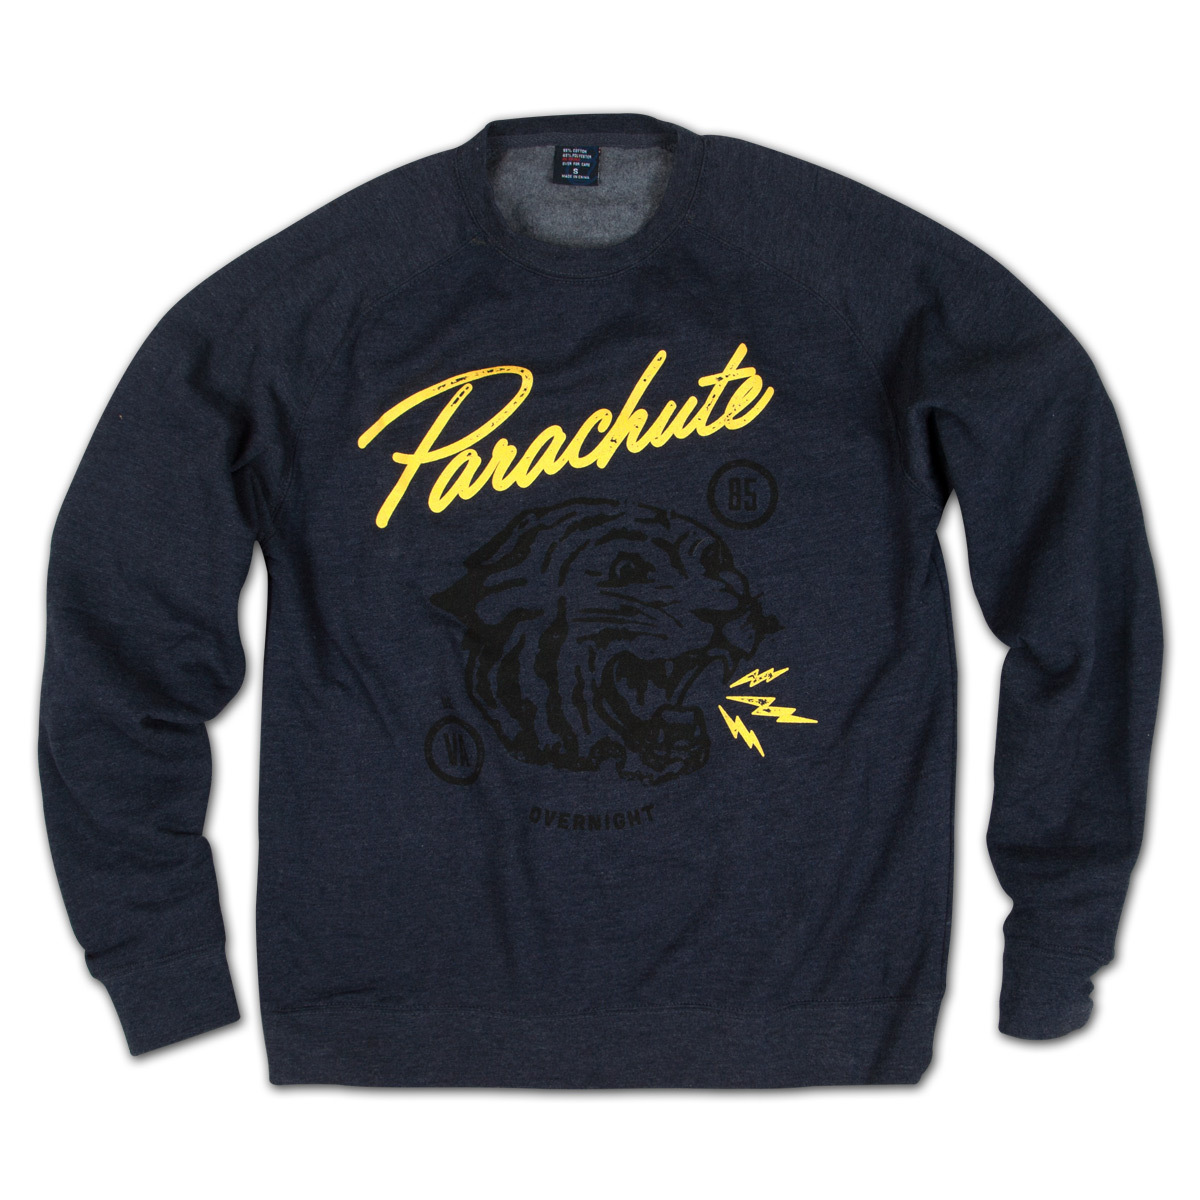 Parachute Black Tiger Sweatshirt